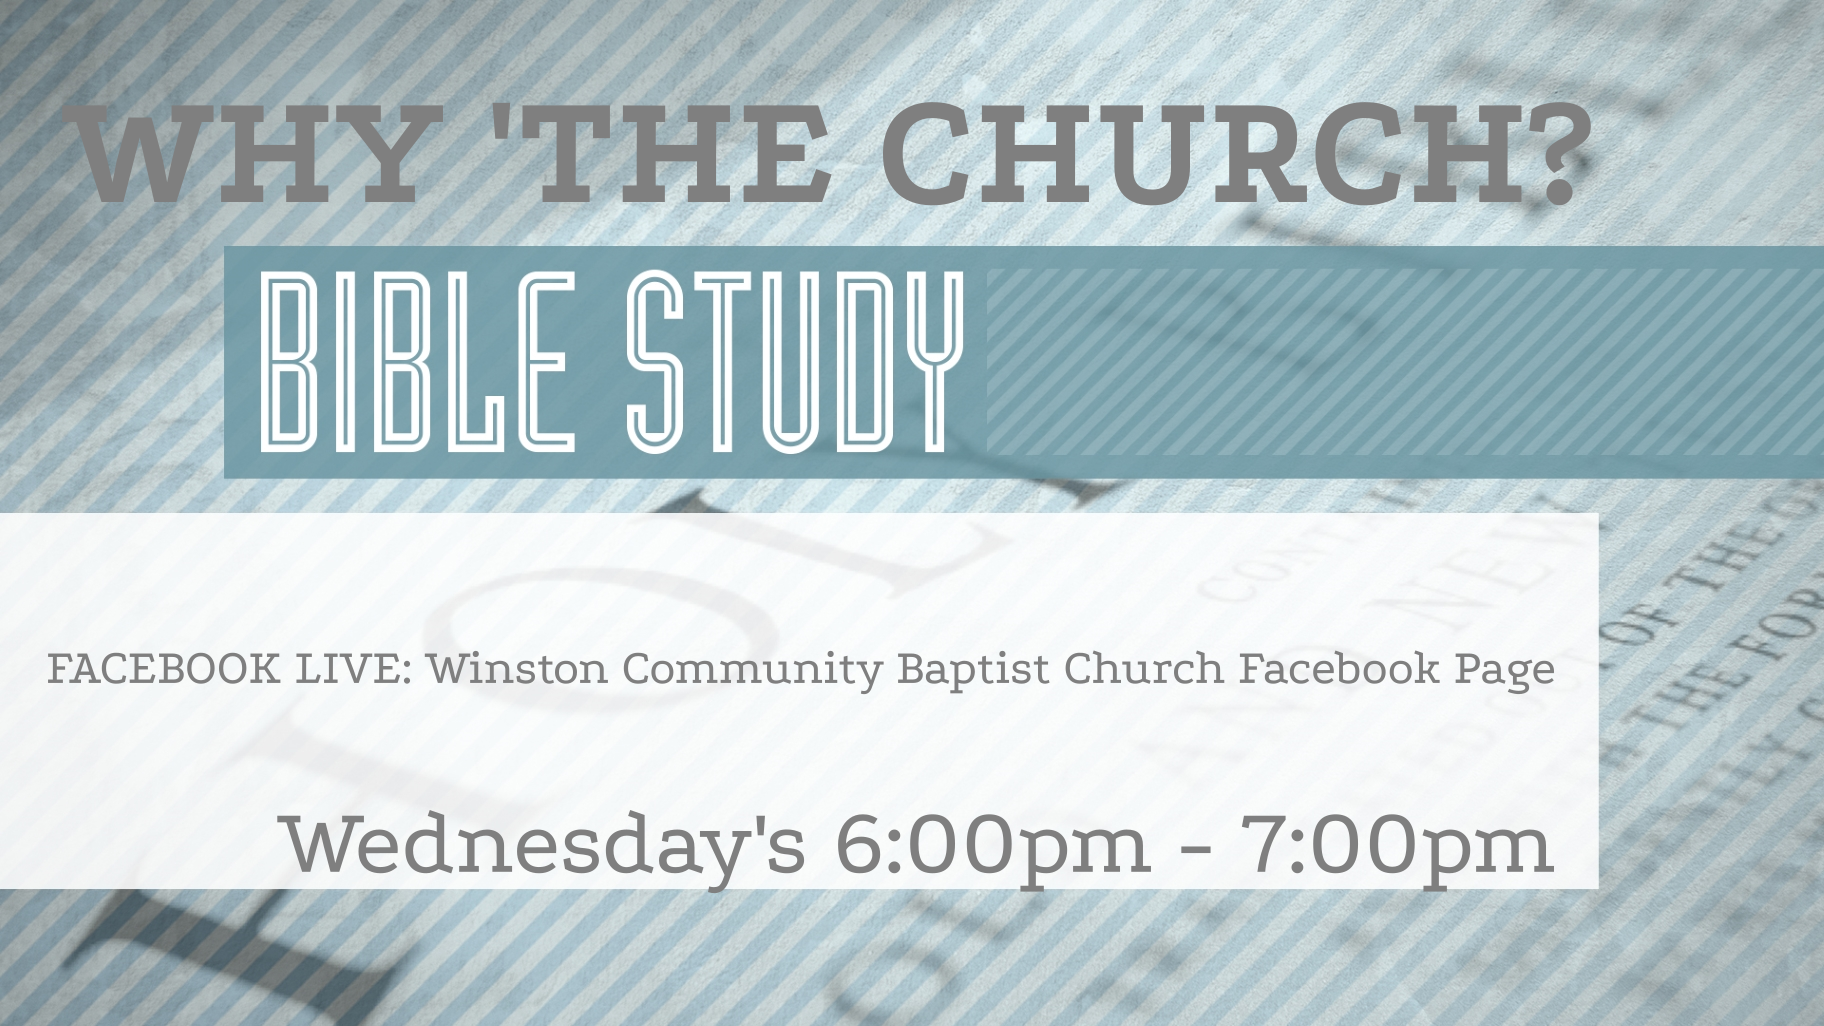 MidWeek Bible Study: Why 'The Church?'